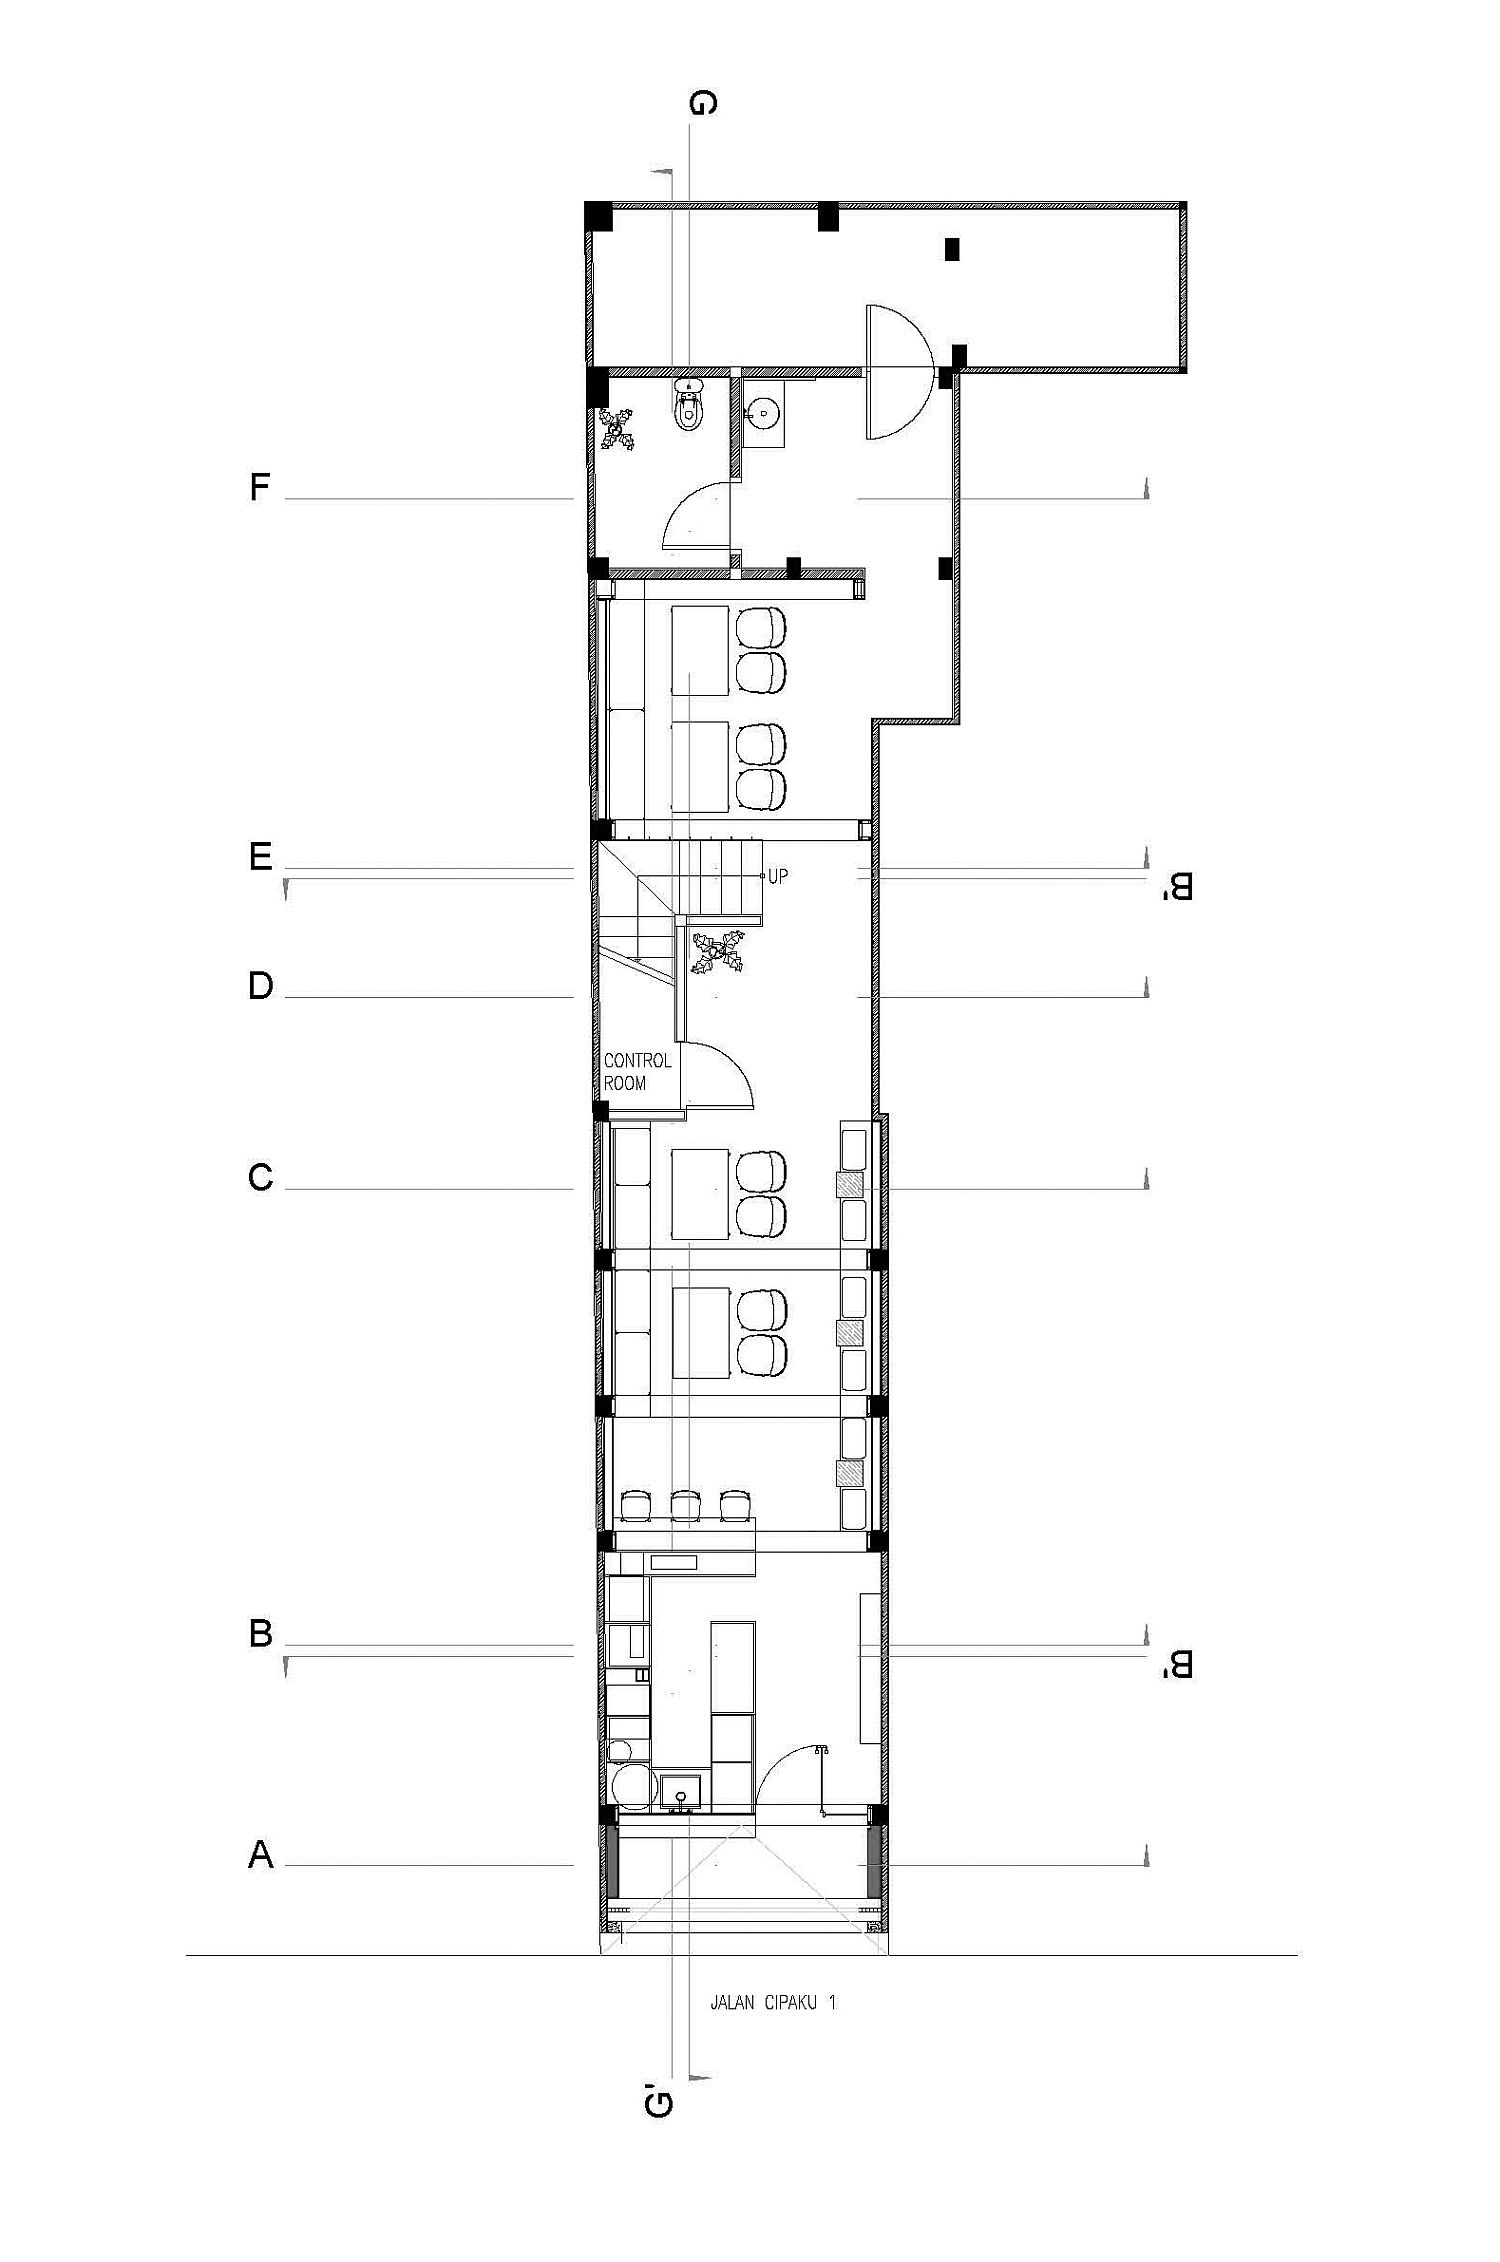 First floor design plan of Cliq Coffee